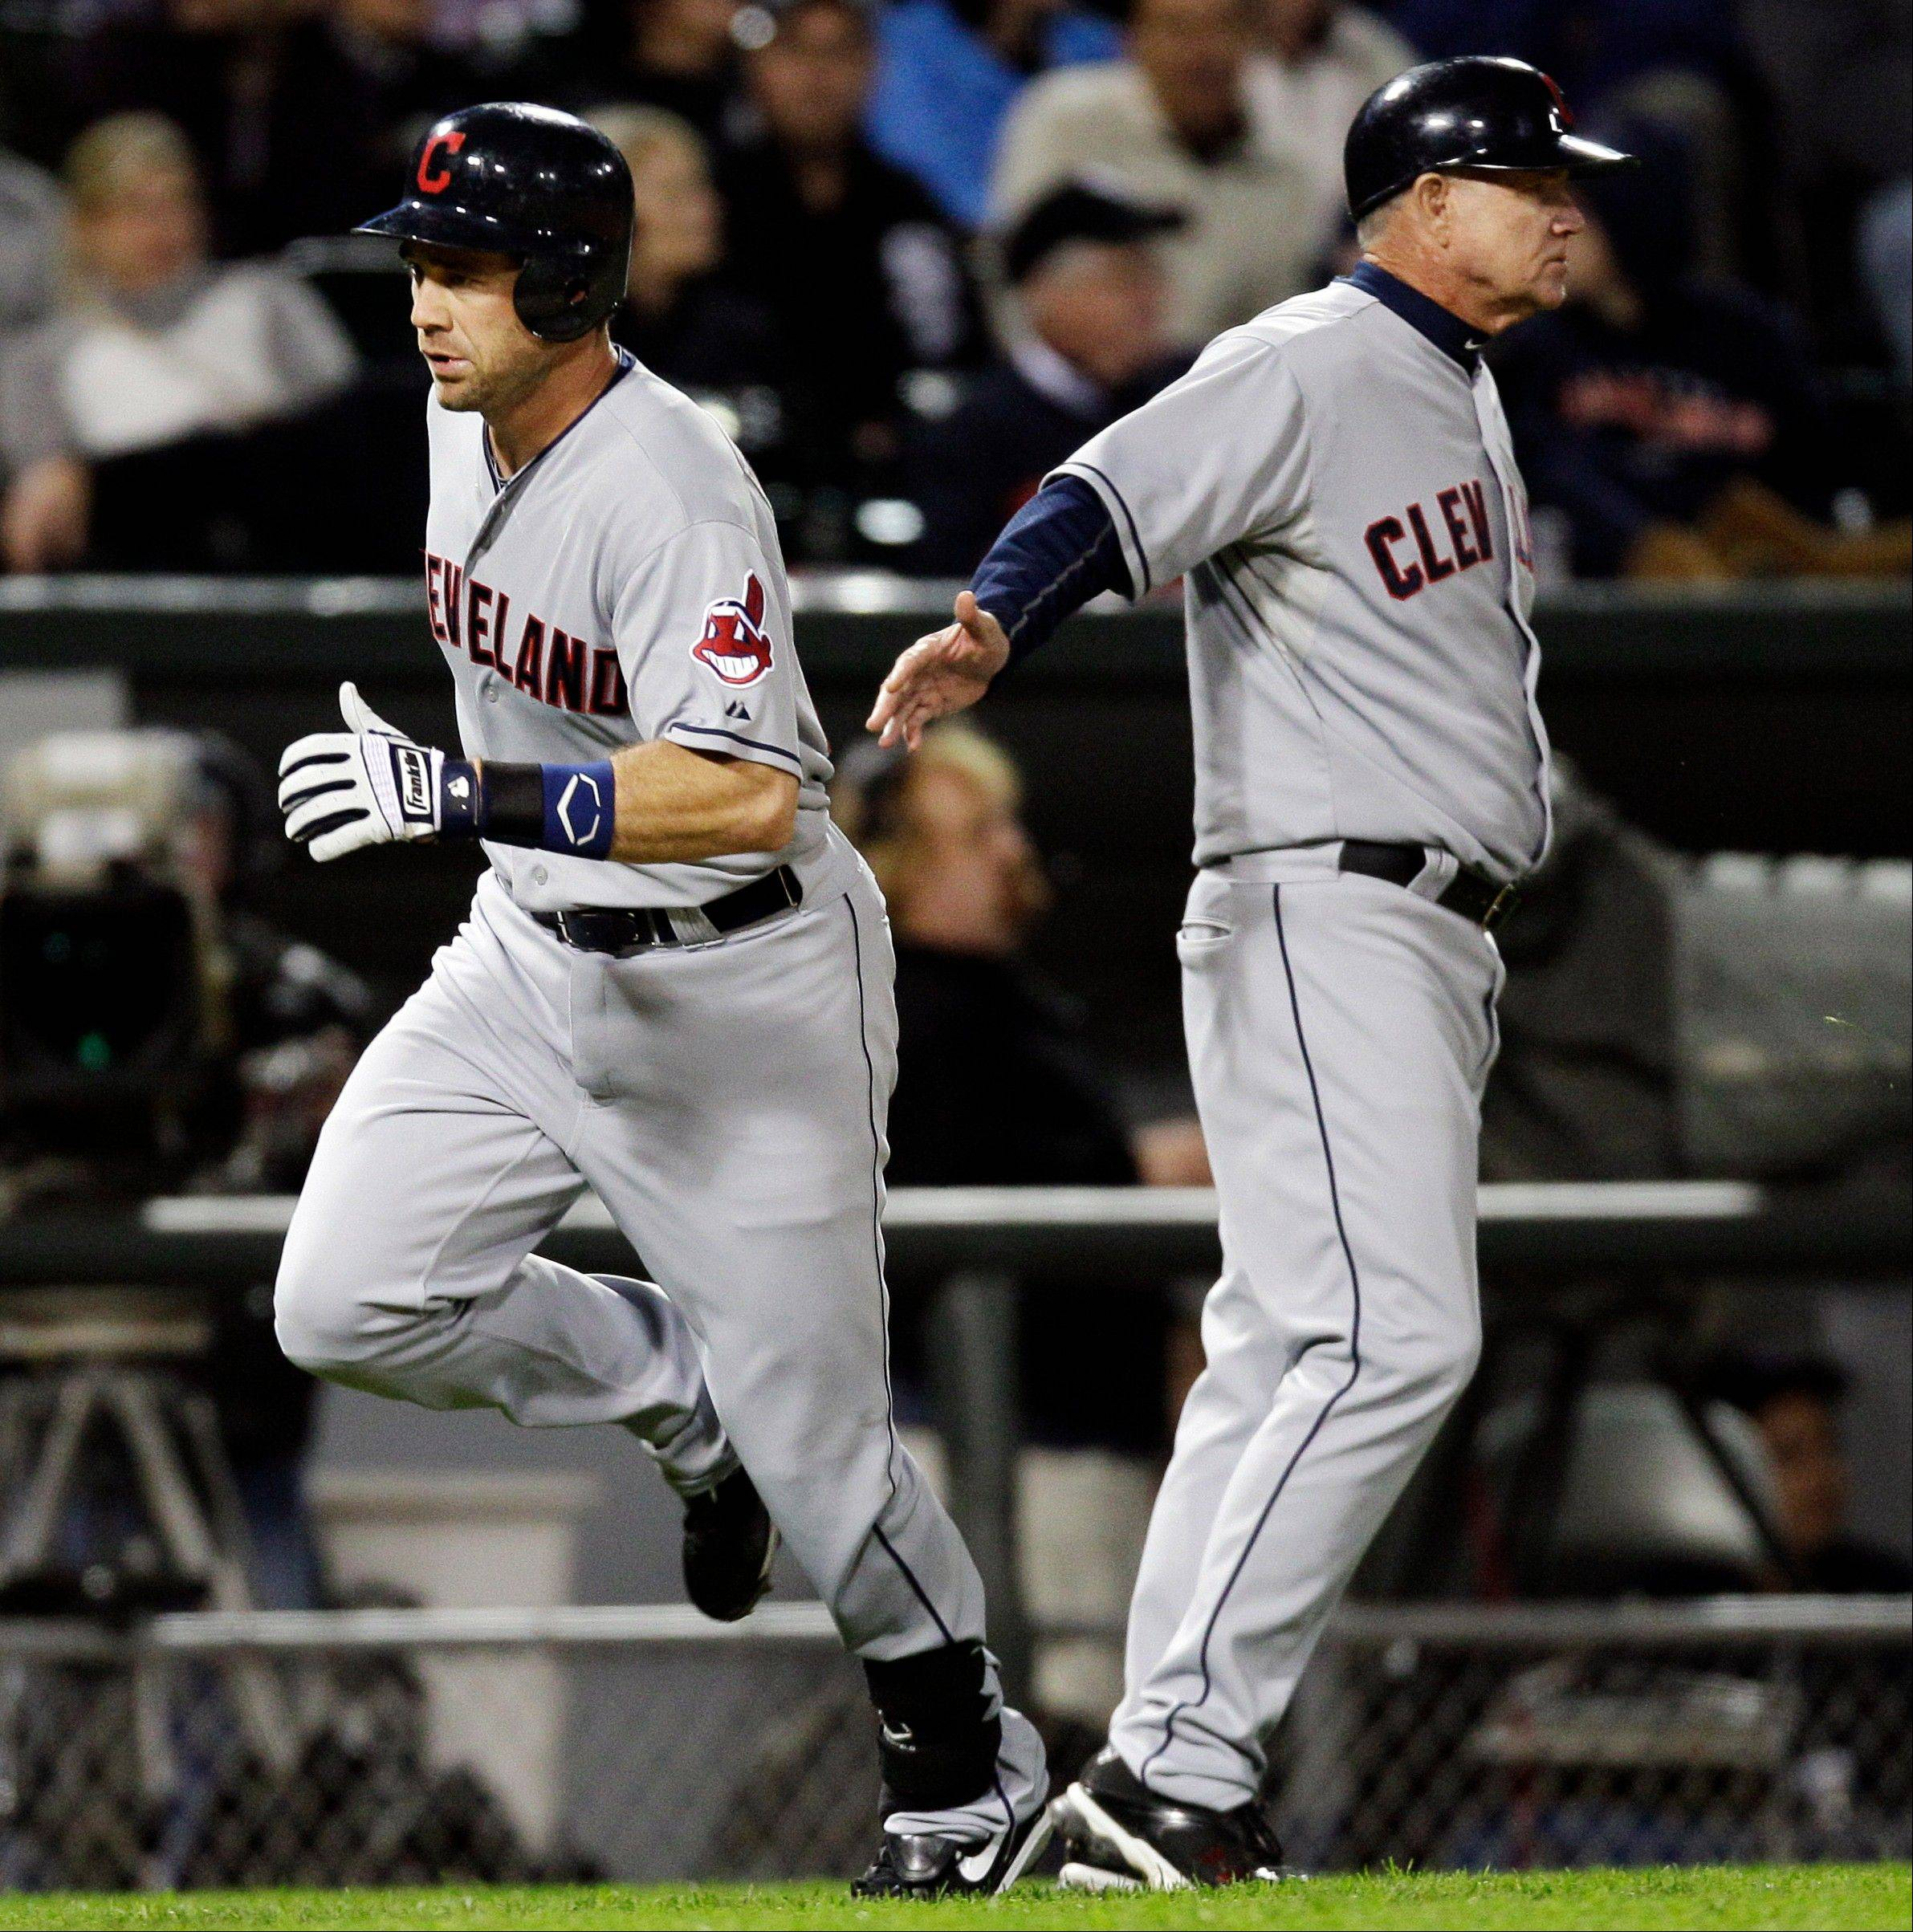 The Indians' Vinny Rottino celebrates with third-base coach Steve Smith after hitting a solo home run in the eighth inning to put the White Sox behind 6-4.